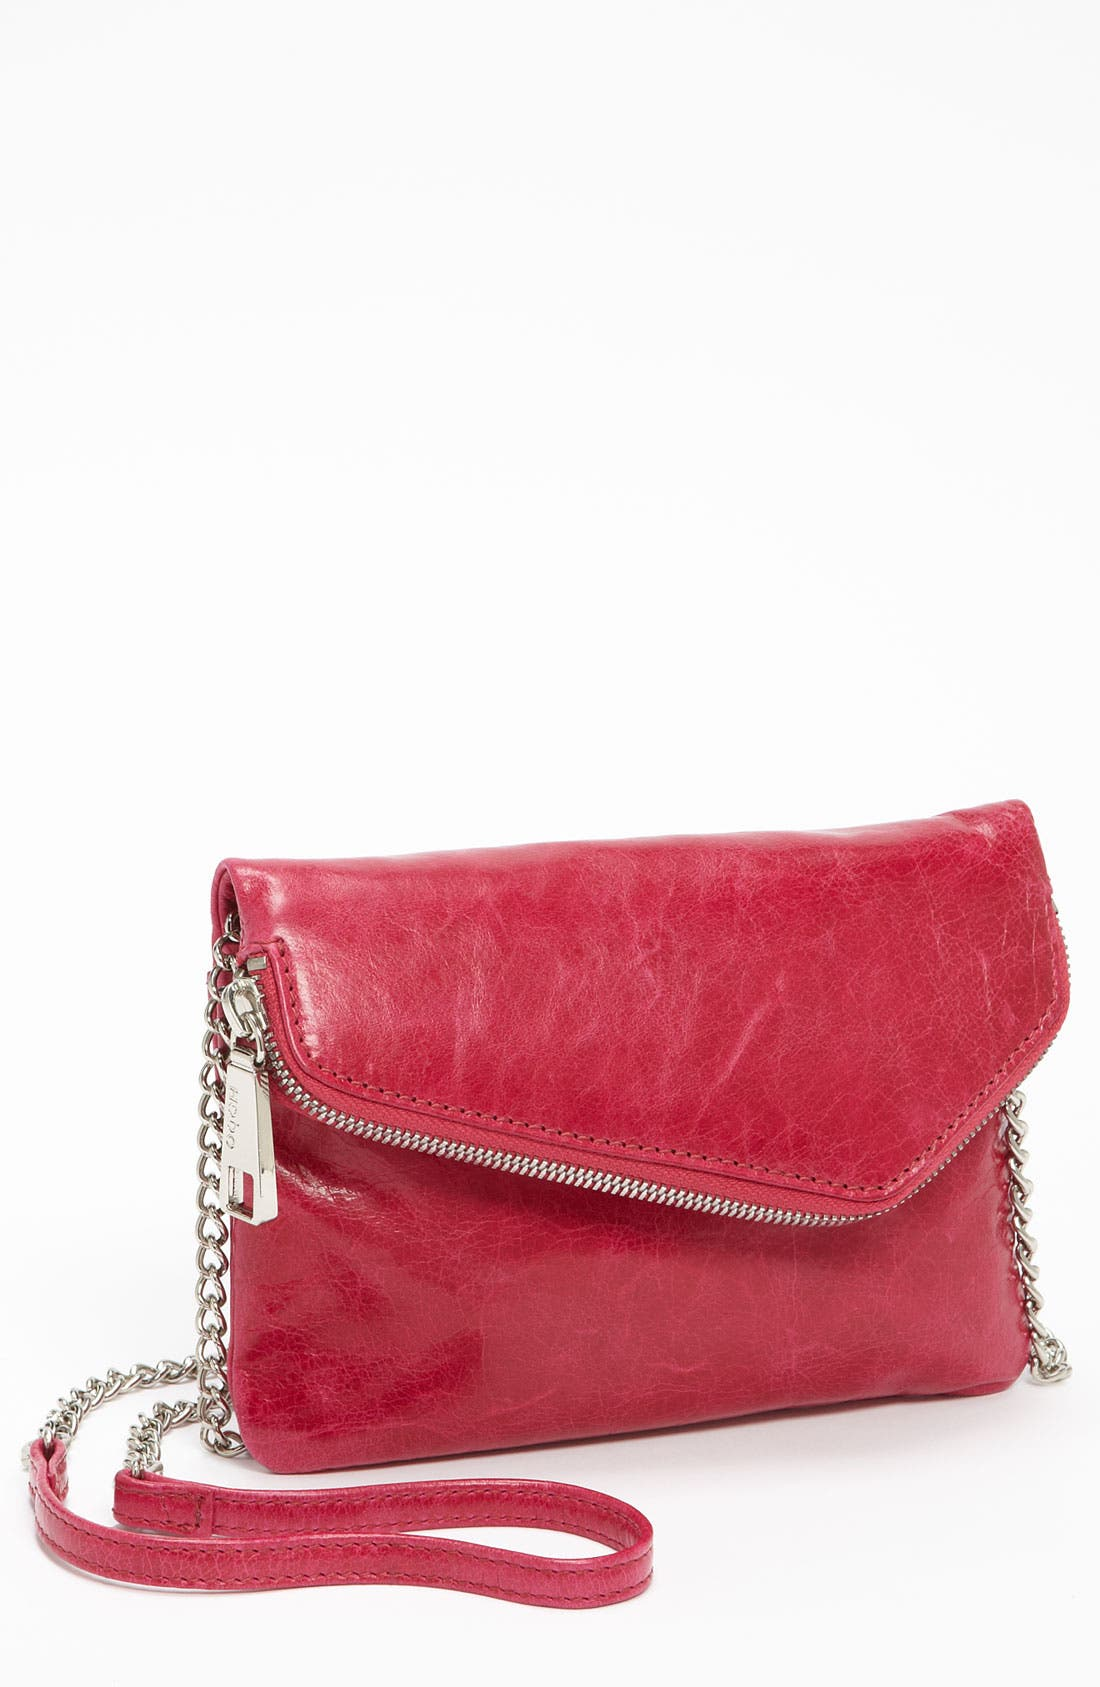 Main Image - Hobo 'Daria' Leather Crossbody Bag